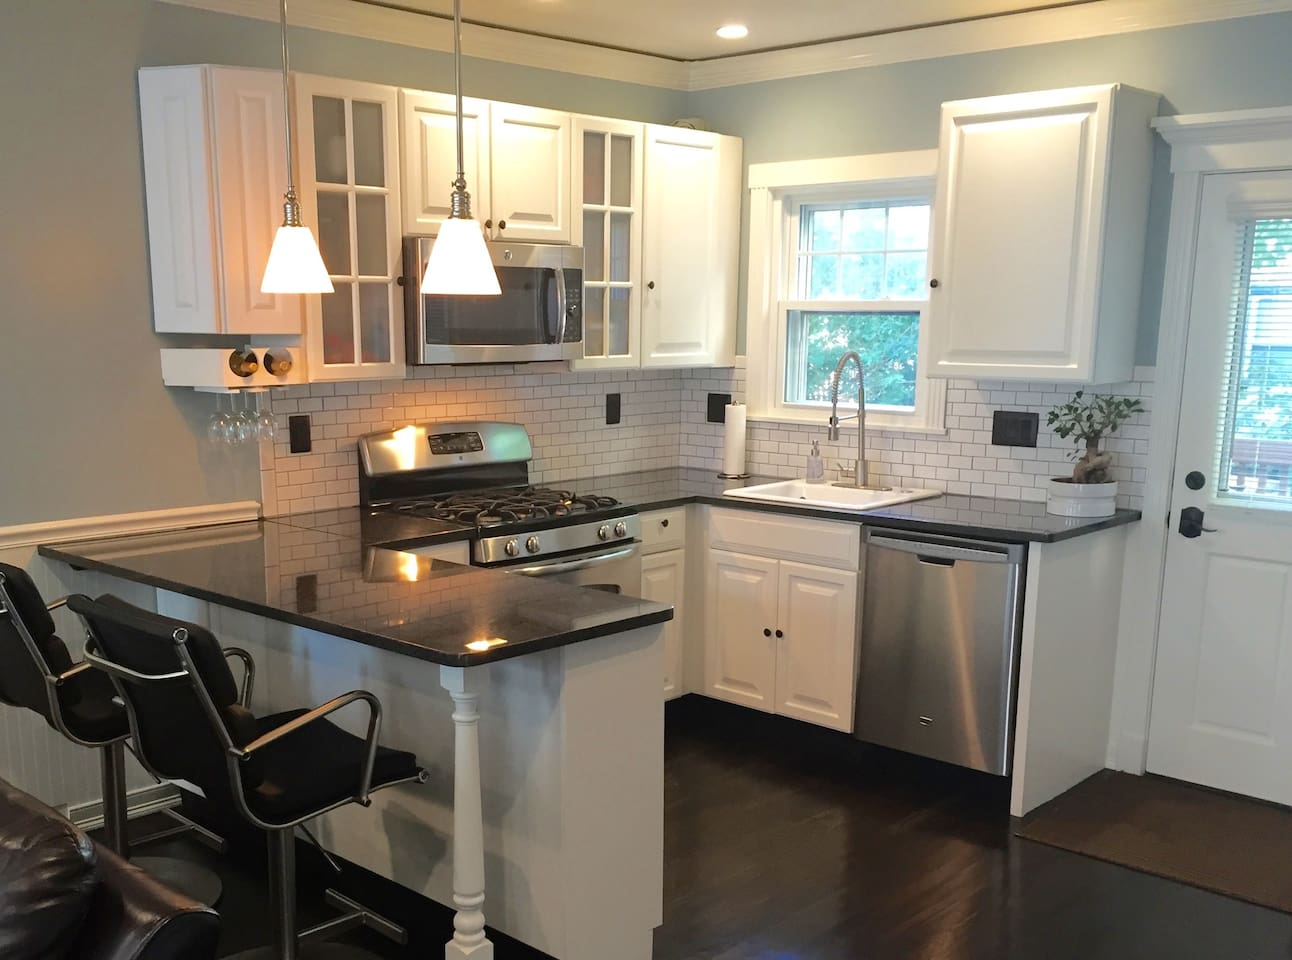 Chef's kitchen with dimmable lighting and direct access to full screen/glass door off of kitchen leading to attached deck and grill/seating area.